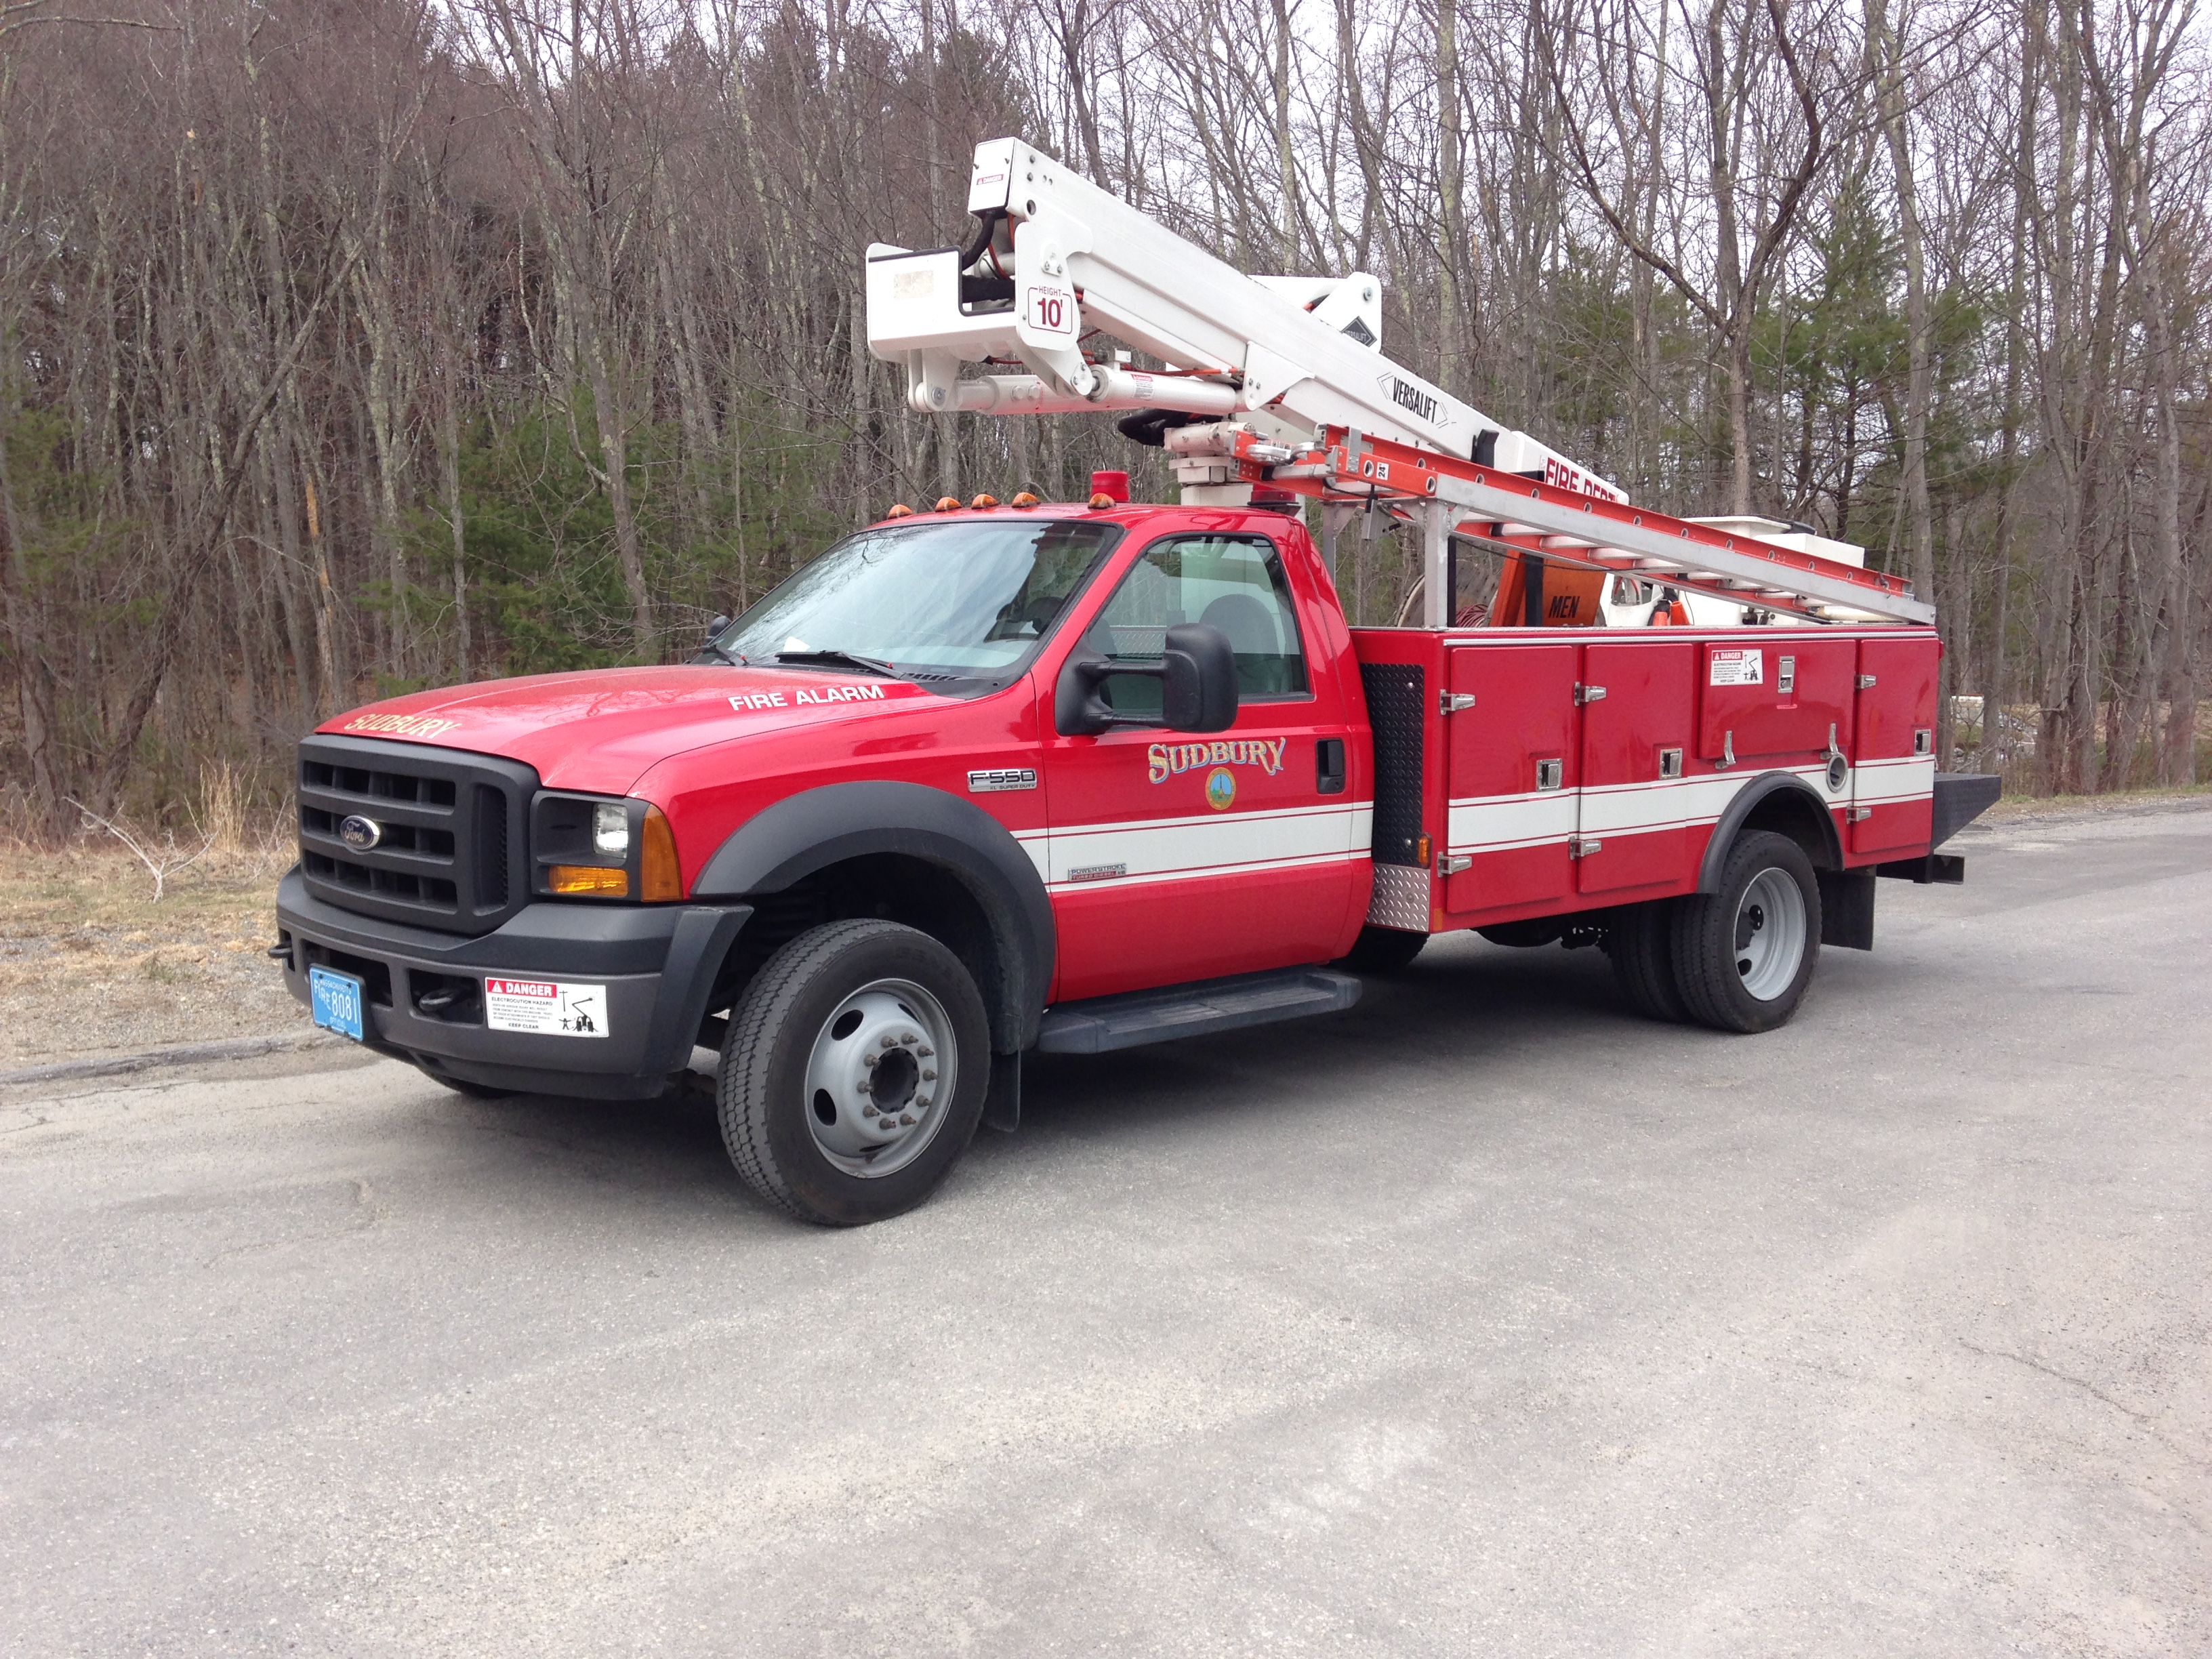 2006 Ford Fire Alarm Truck